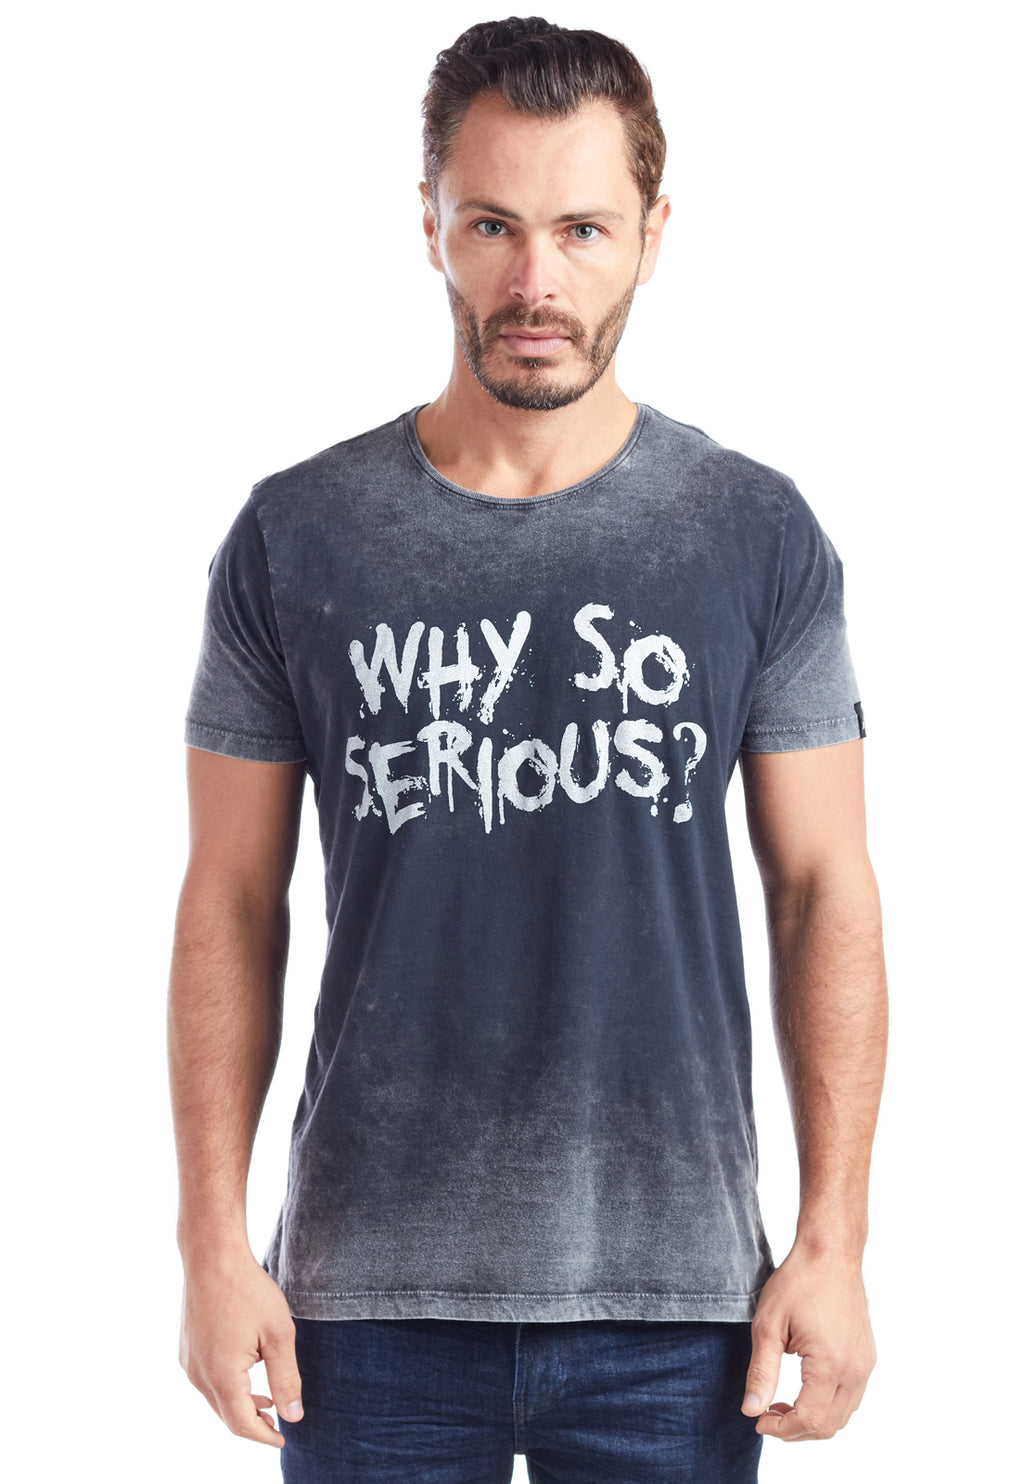 CAMISETA MASCULINA ESTAMPADA - WHY SO SERIOUS?